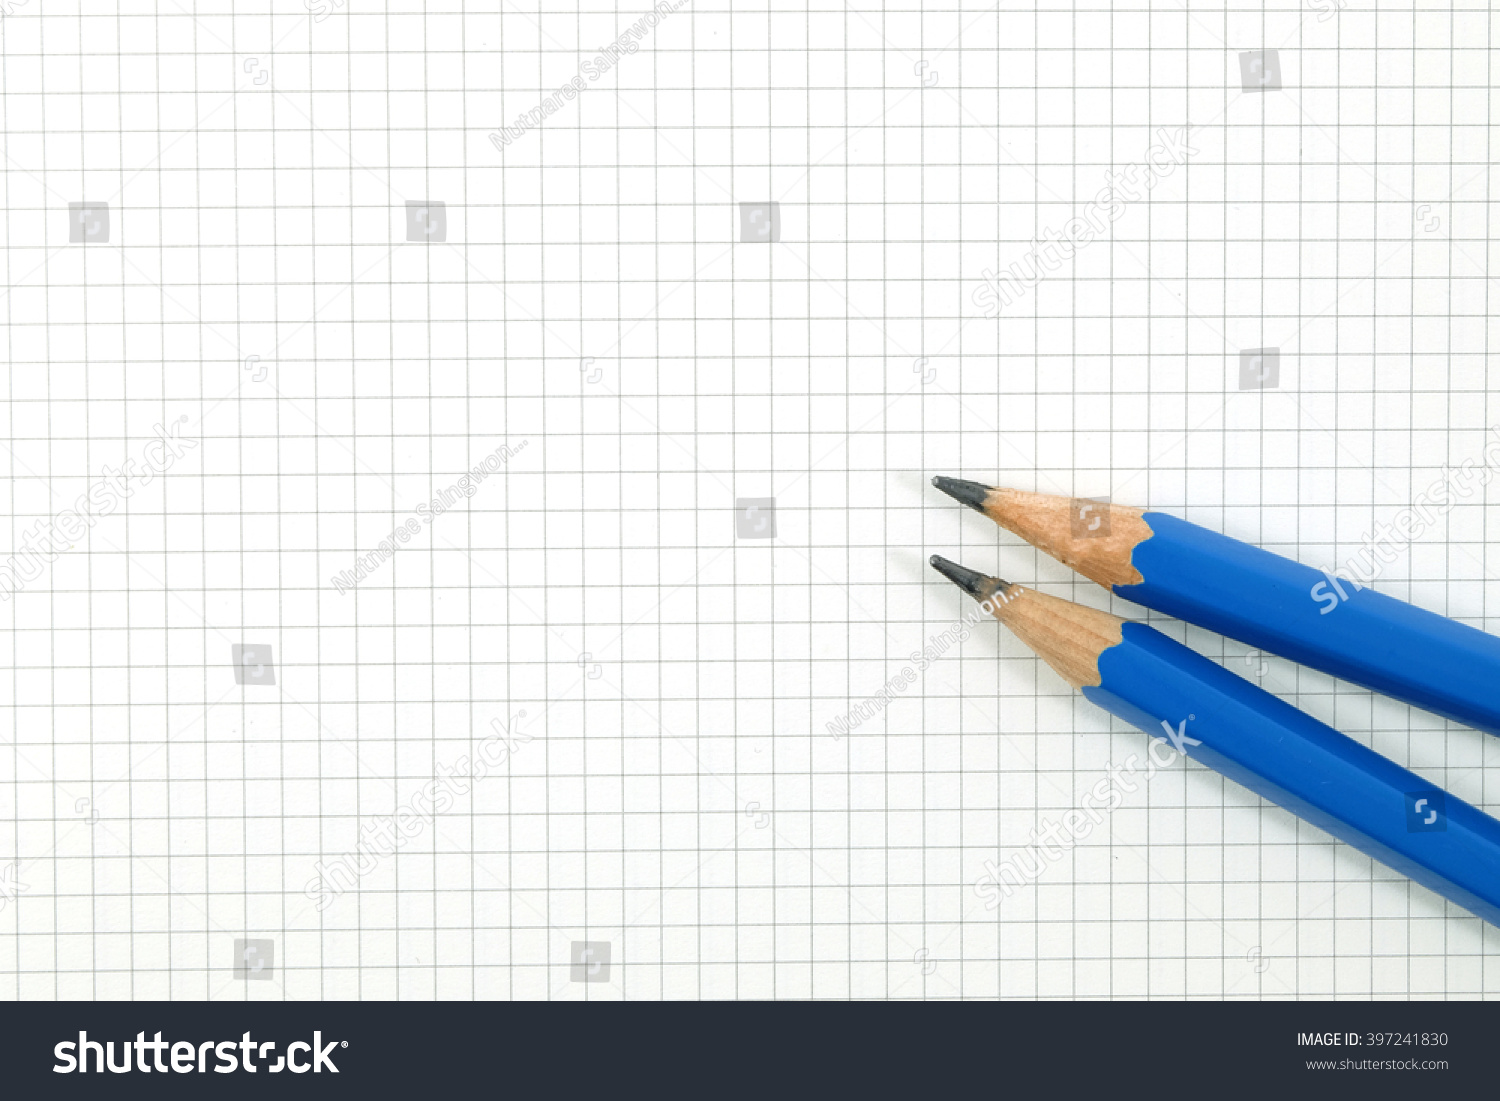 royalty free pencil on drafting paper or graph paper 397241830